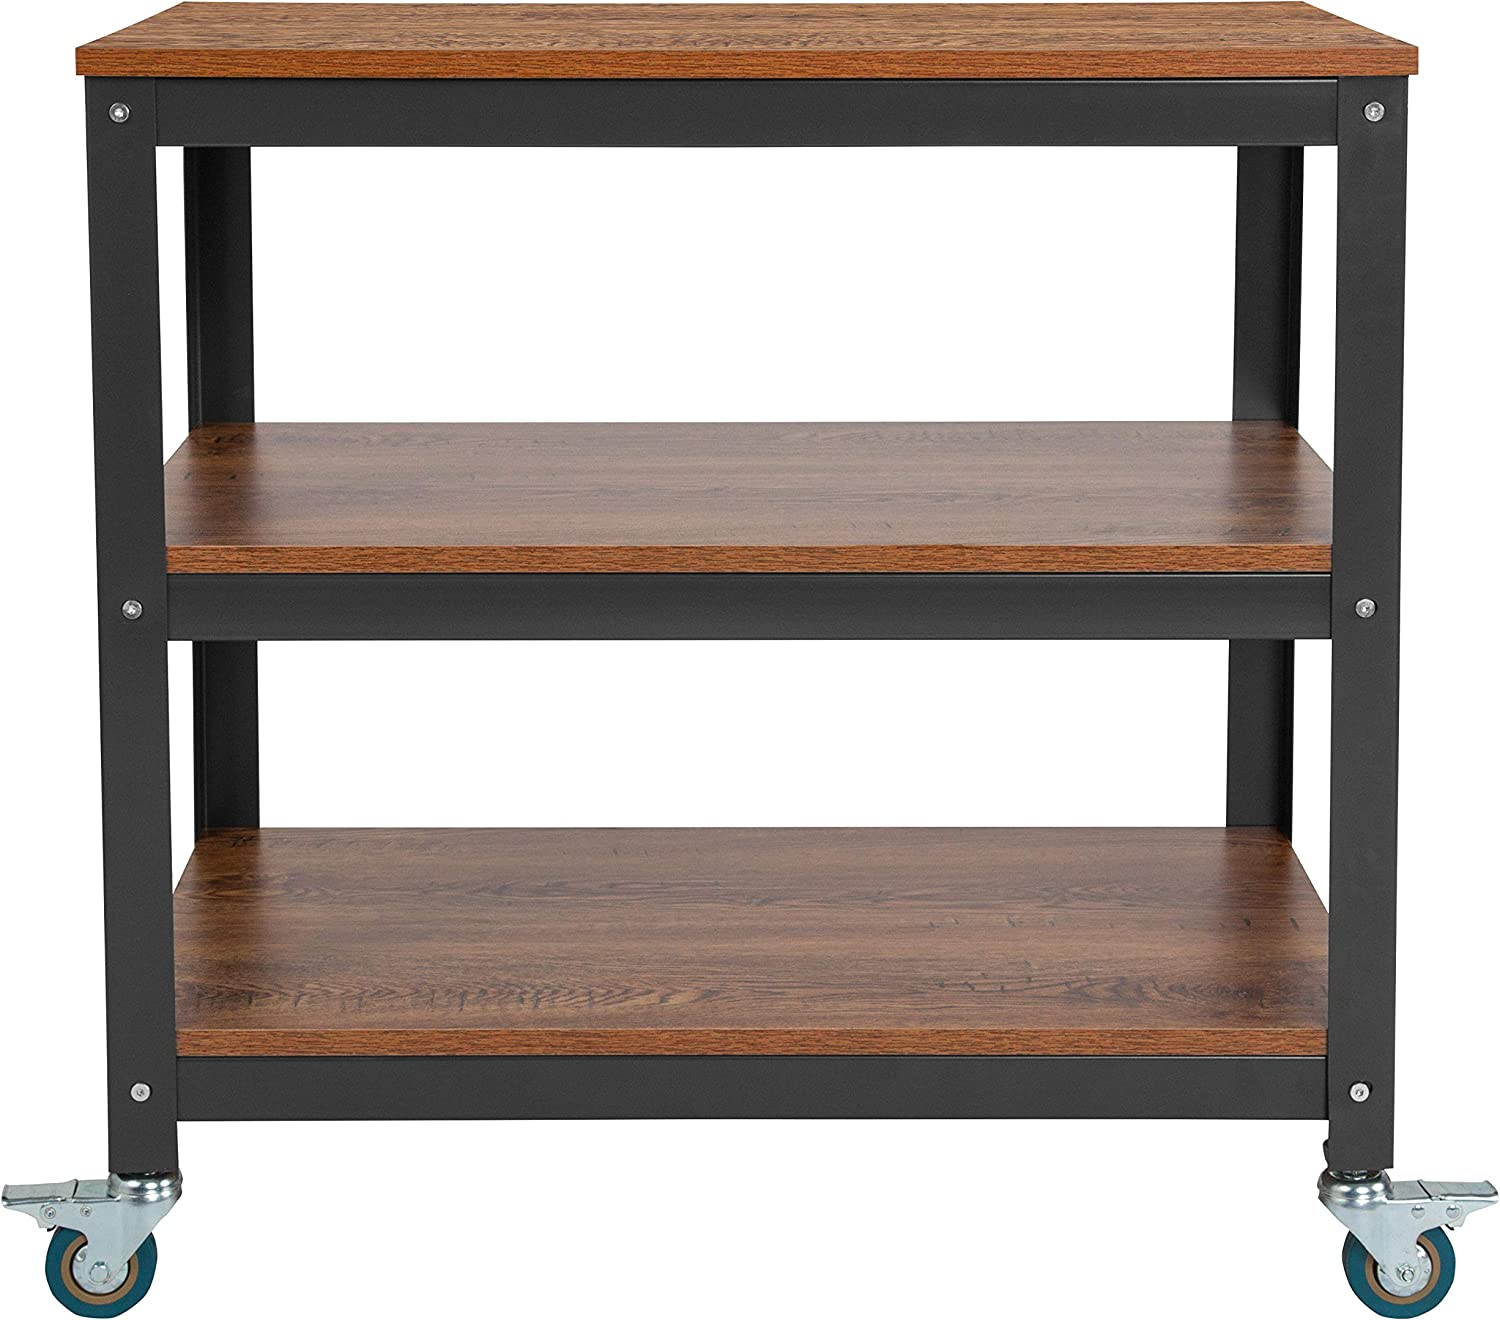 Flash Furniture Livingston Collection 30W Rolling Storage Cart with Metal Wheels in Brown Oak Wood Grain Finish